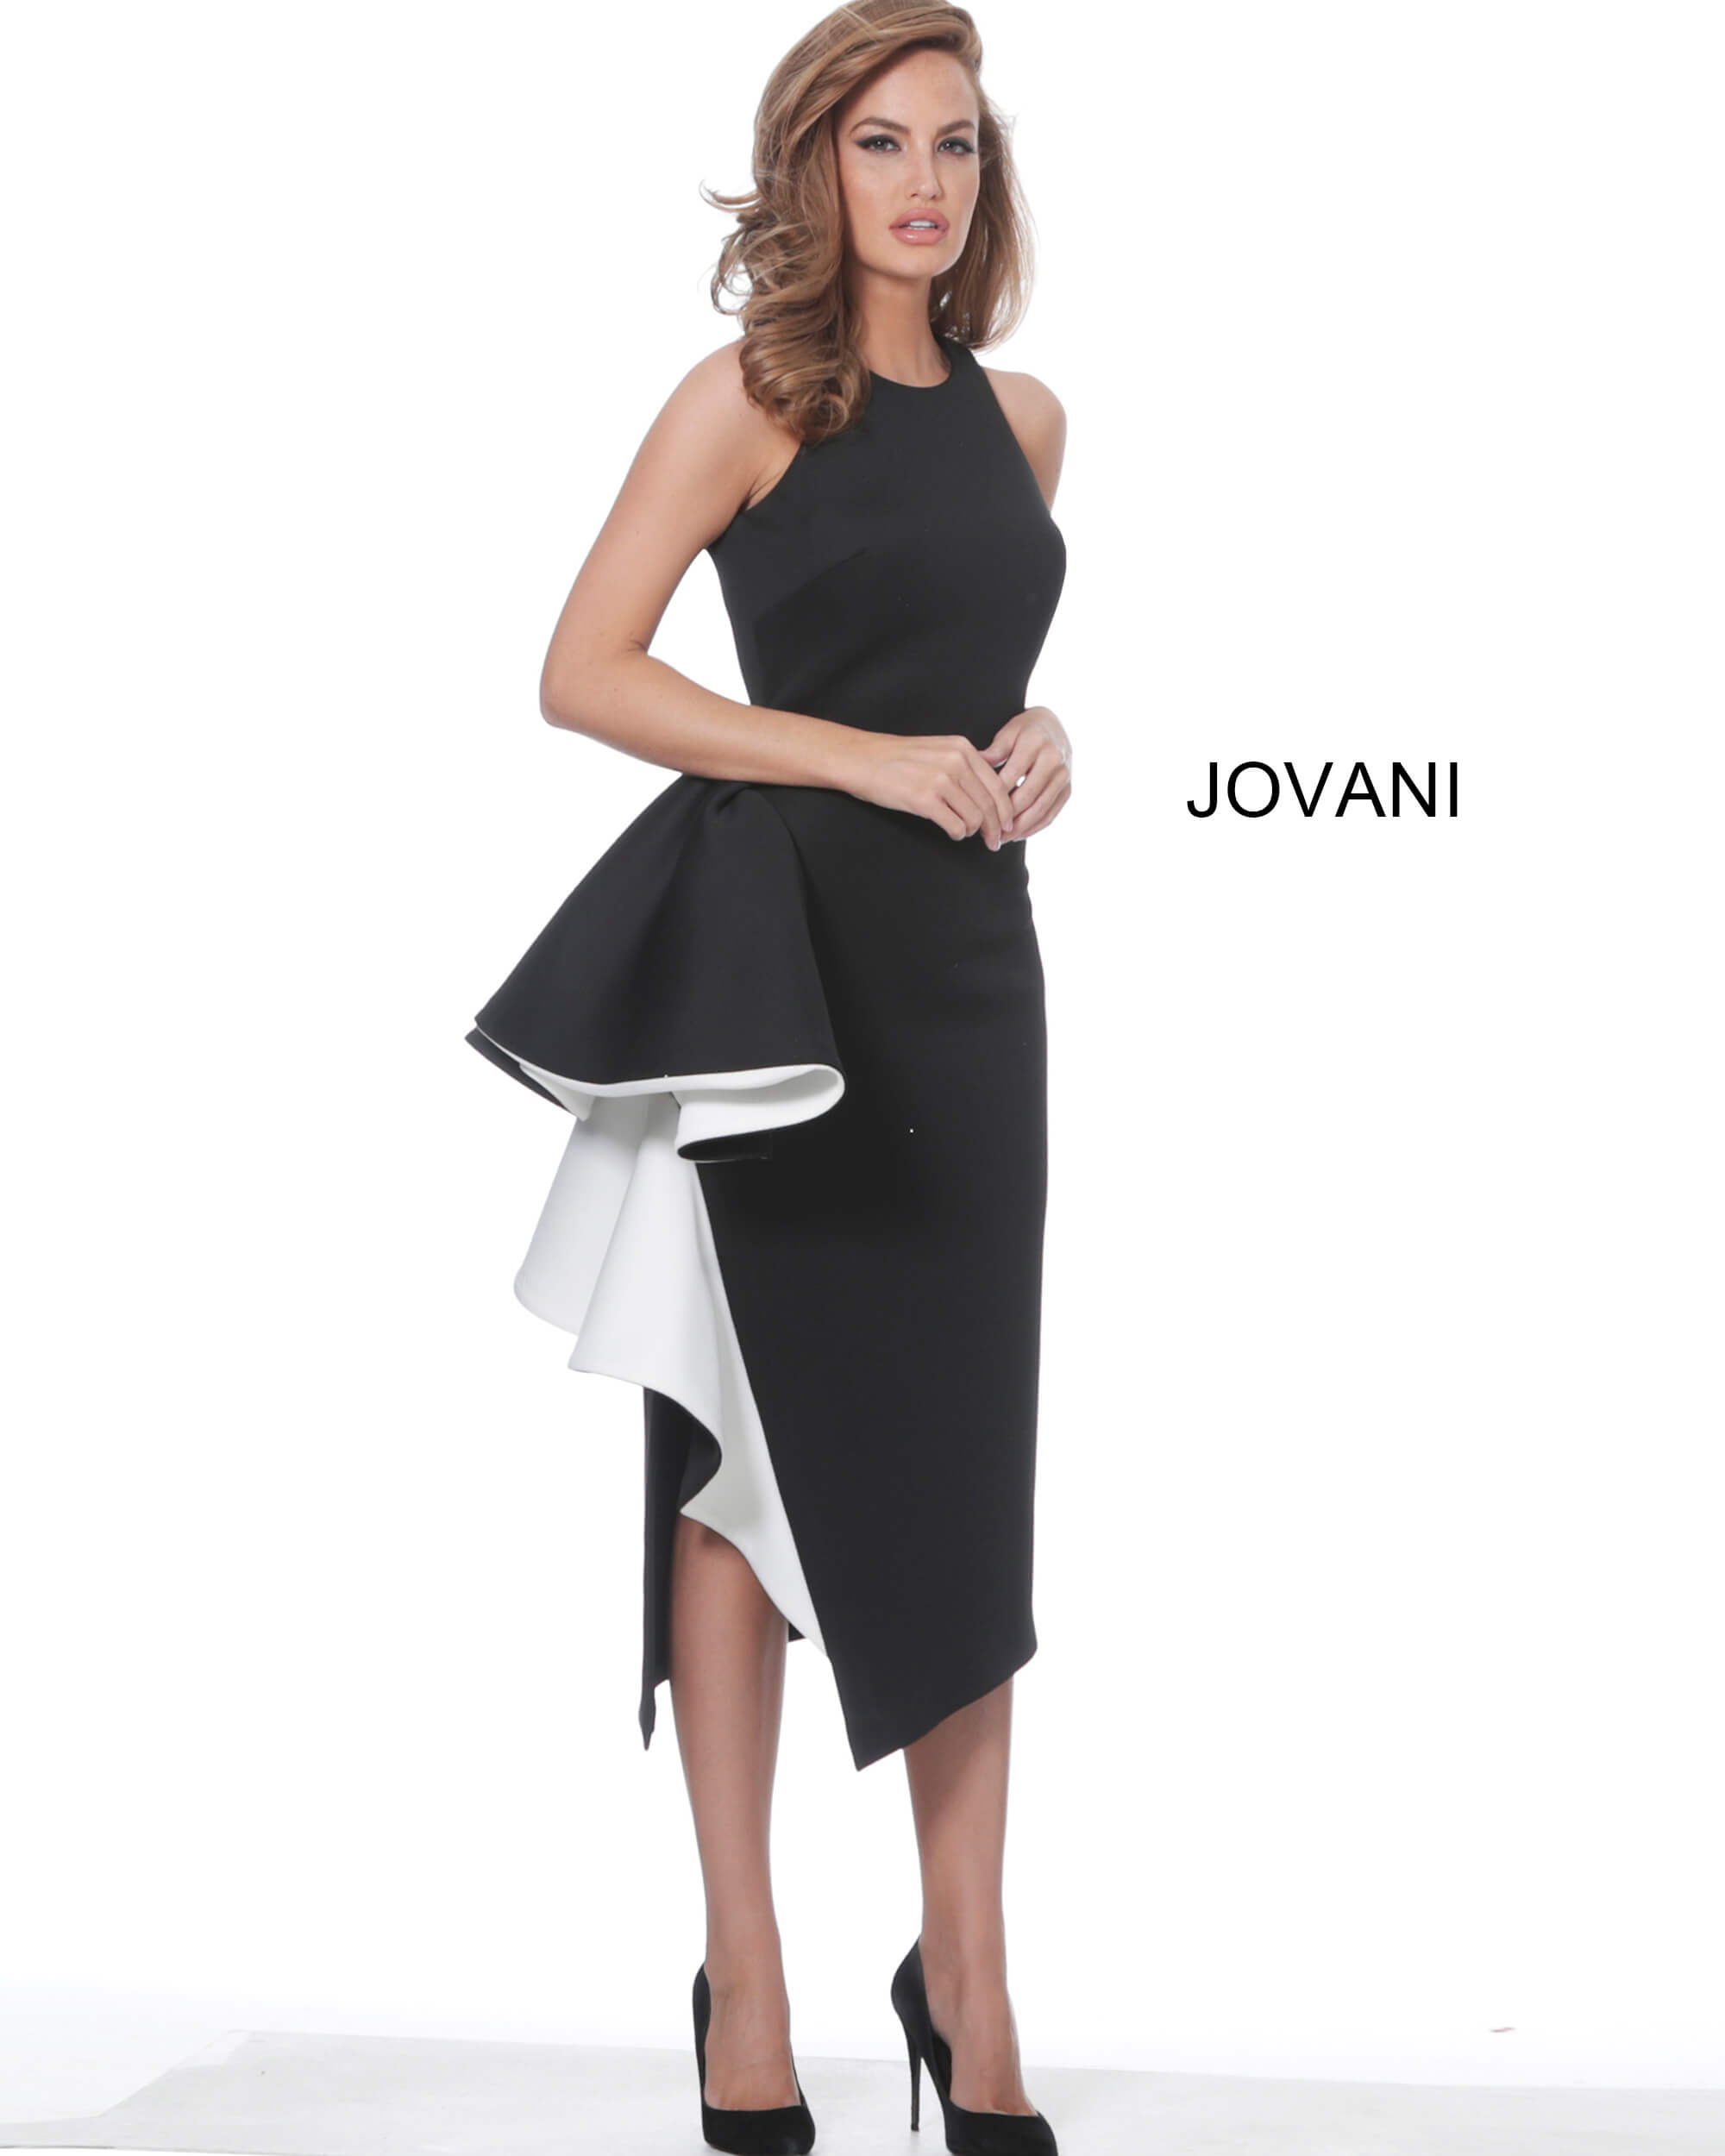 jovani Jovani 00572 Black and White Elegant Fitted Cocktail Dress